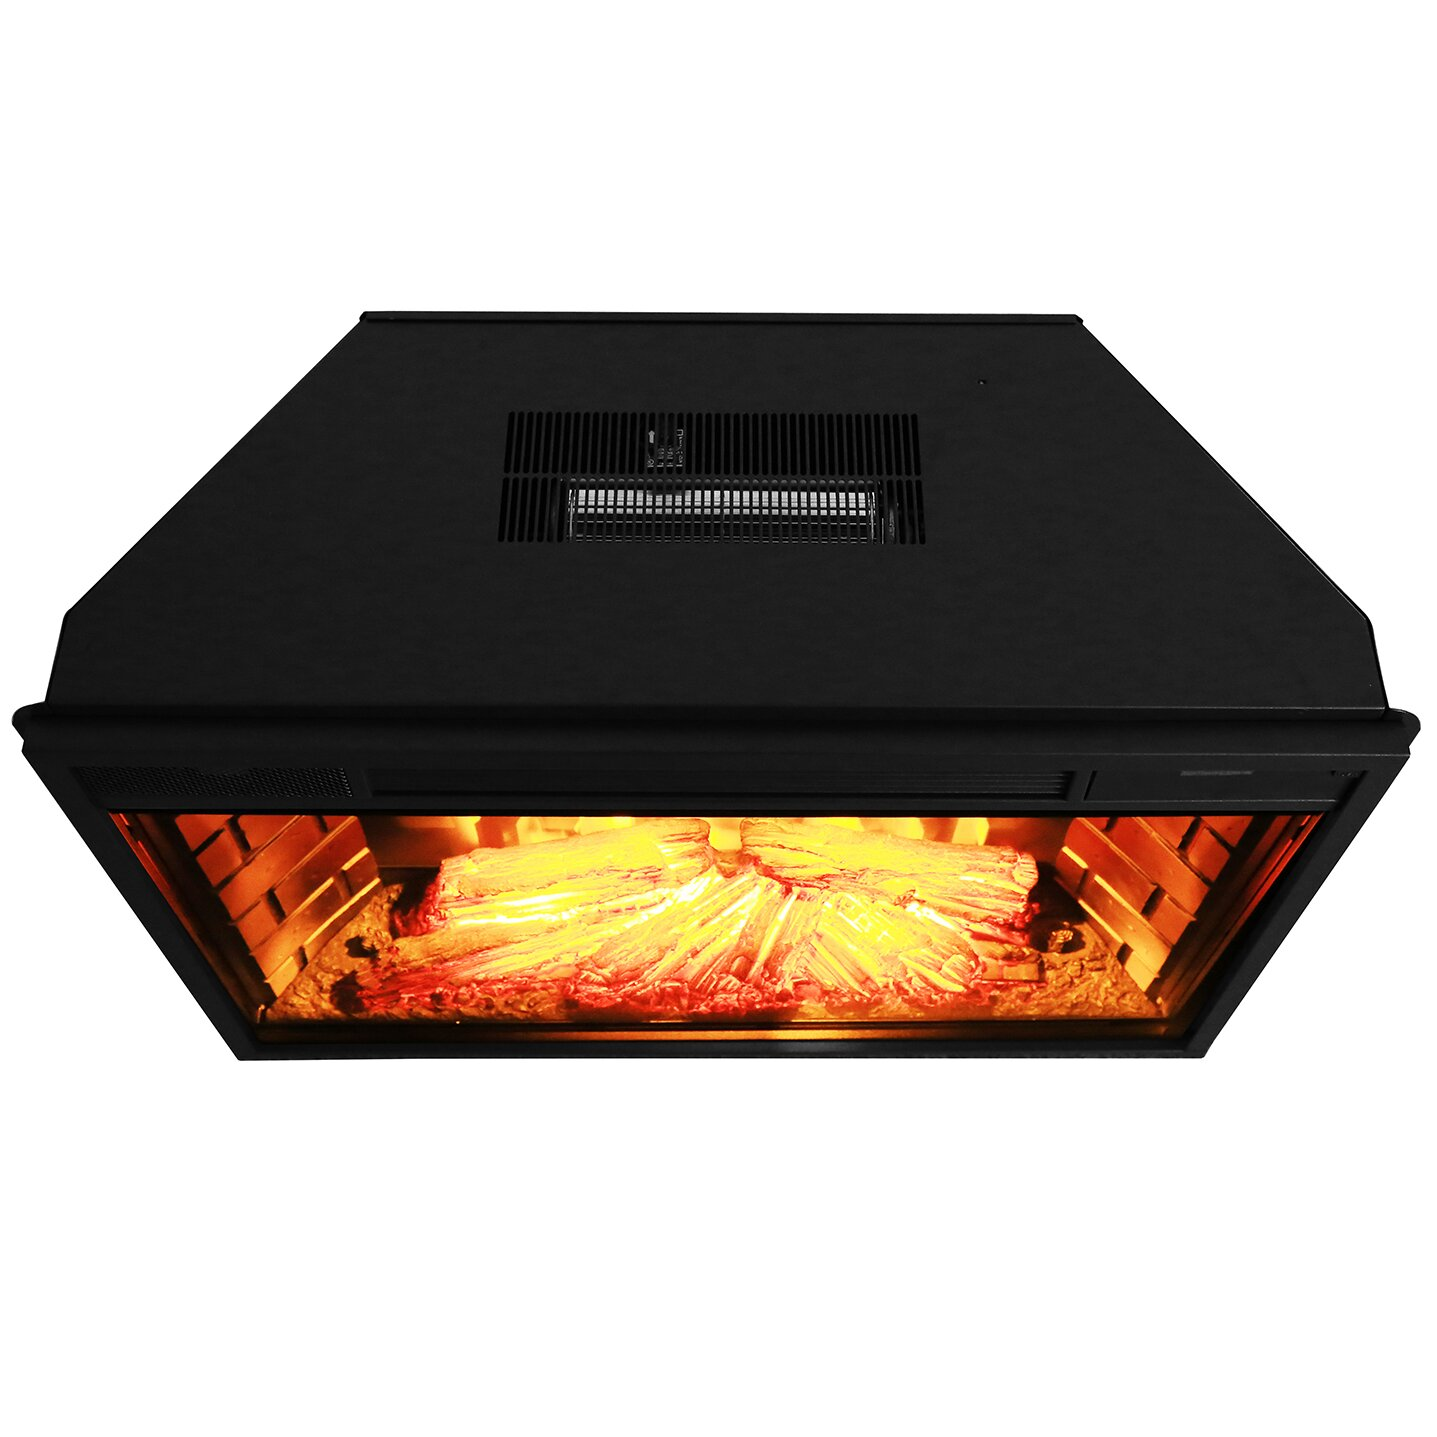 Electric Fireplace Inserts With Heater: 28'' Electric Fireplace Insert